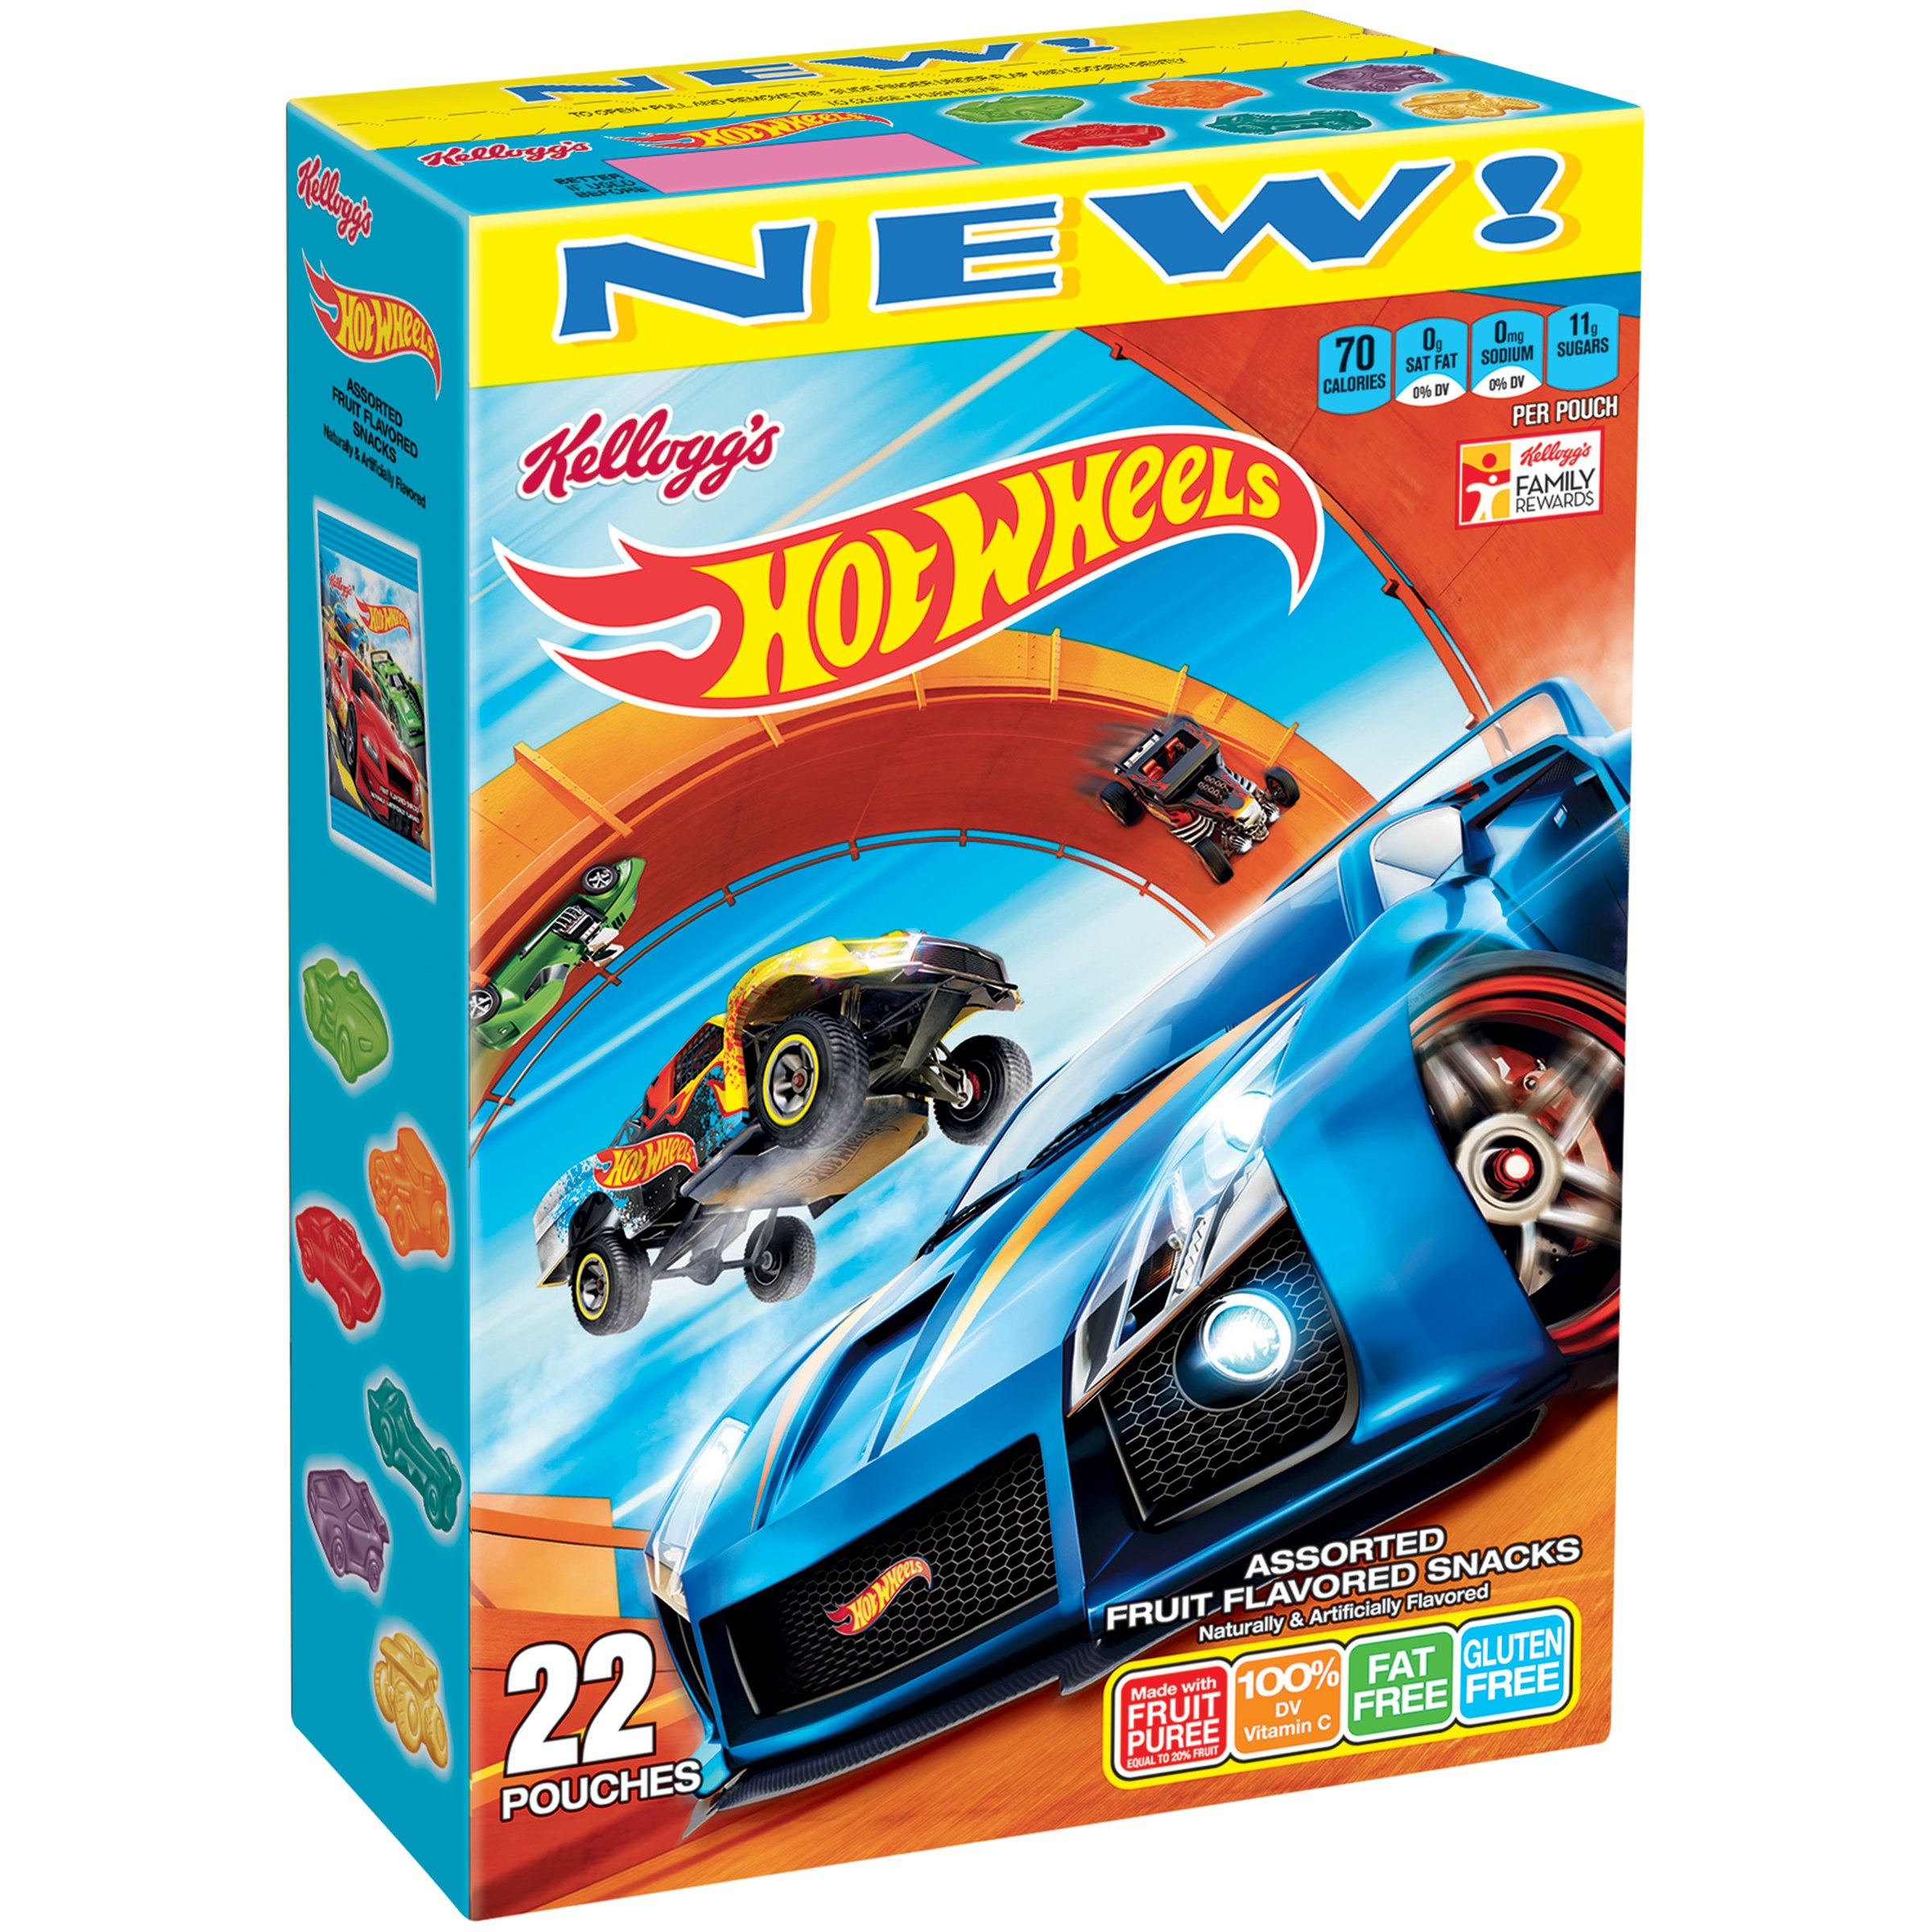 Kellogg's Hot Wheels Fruit Flavored Snacks, 22 Count, 17.6 Ounce